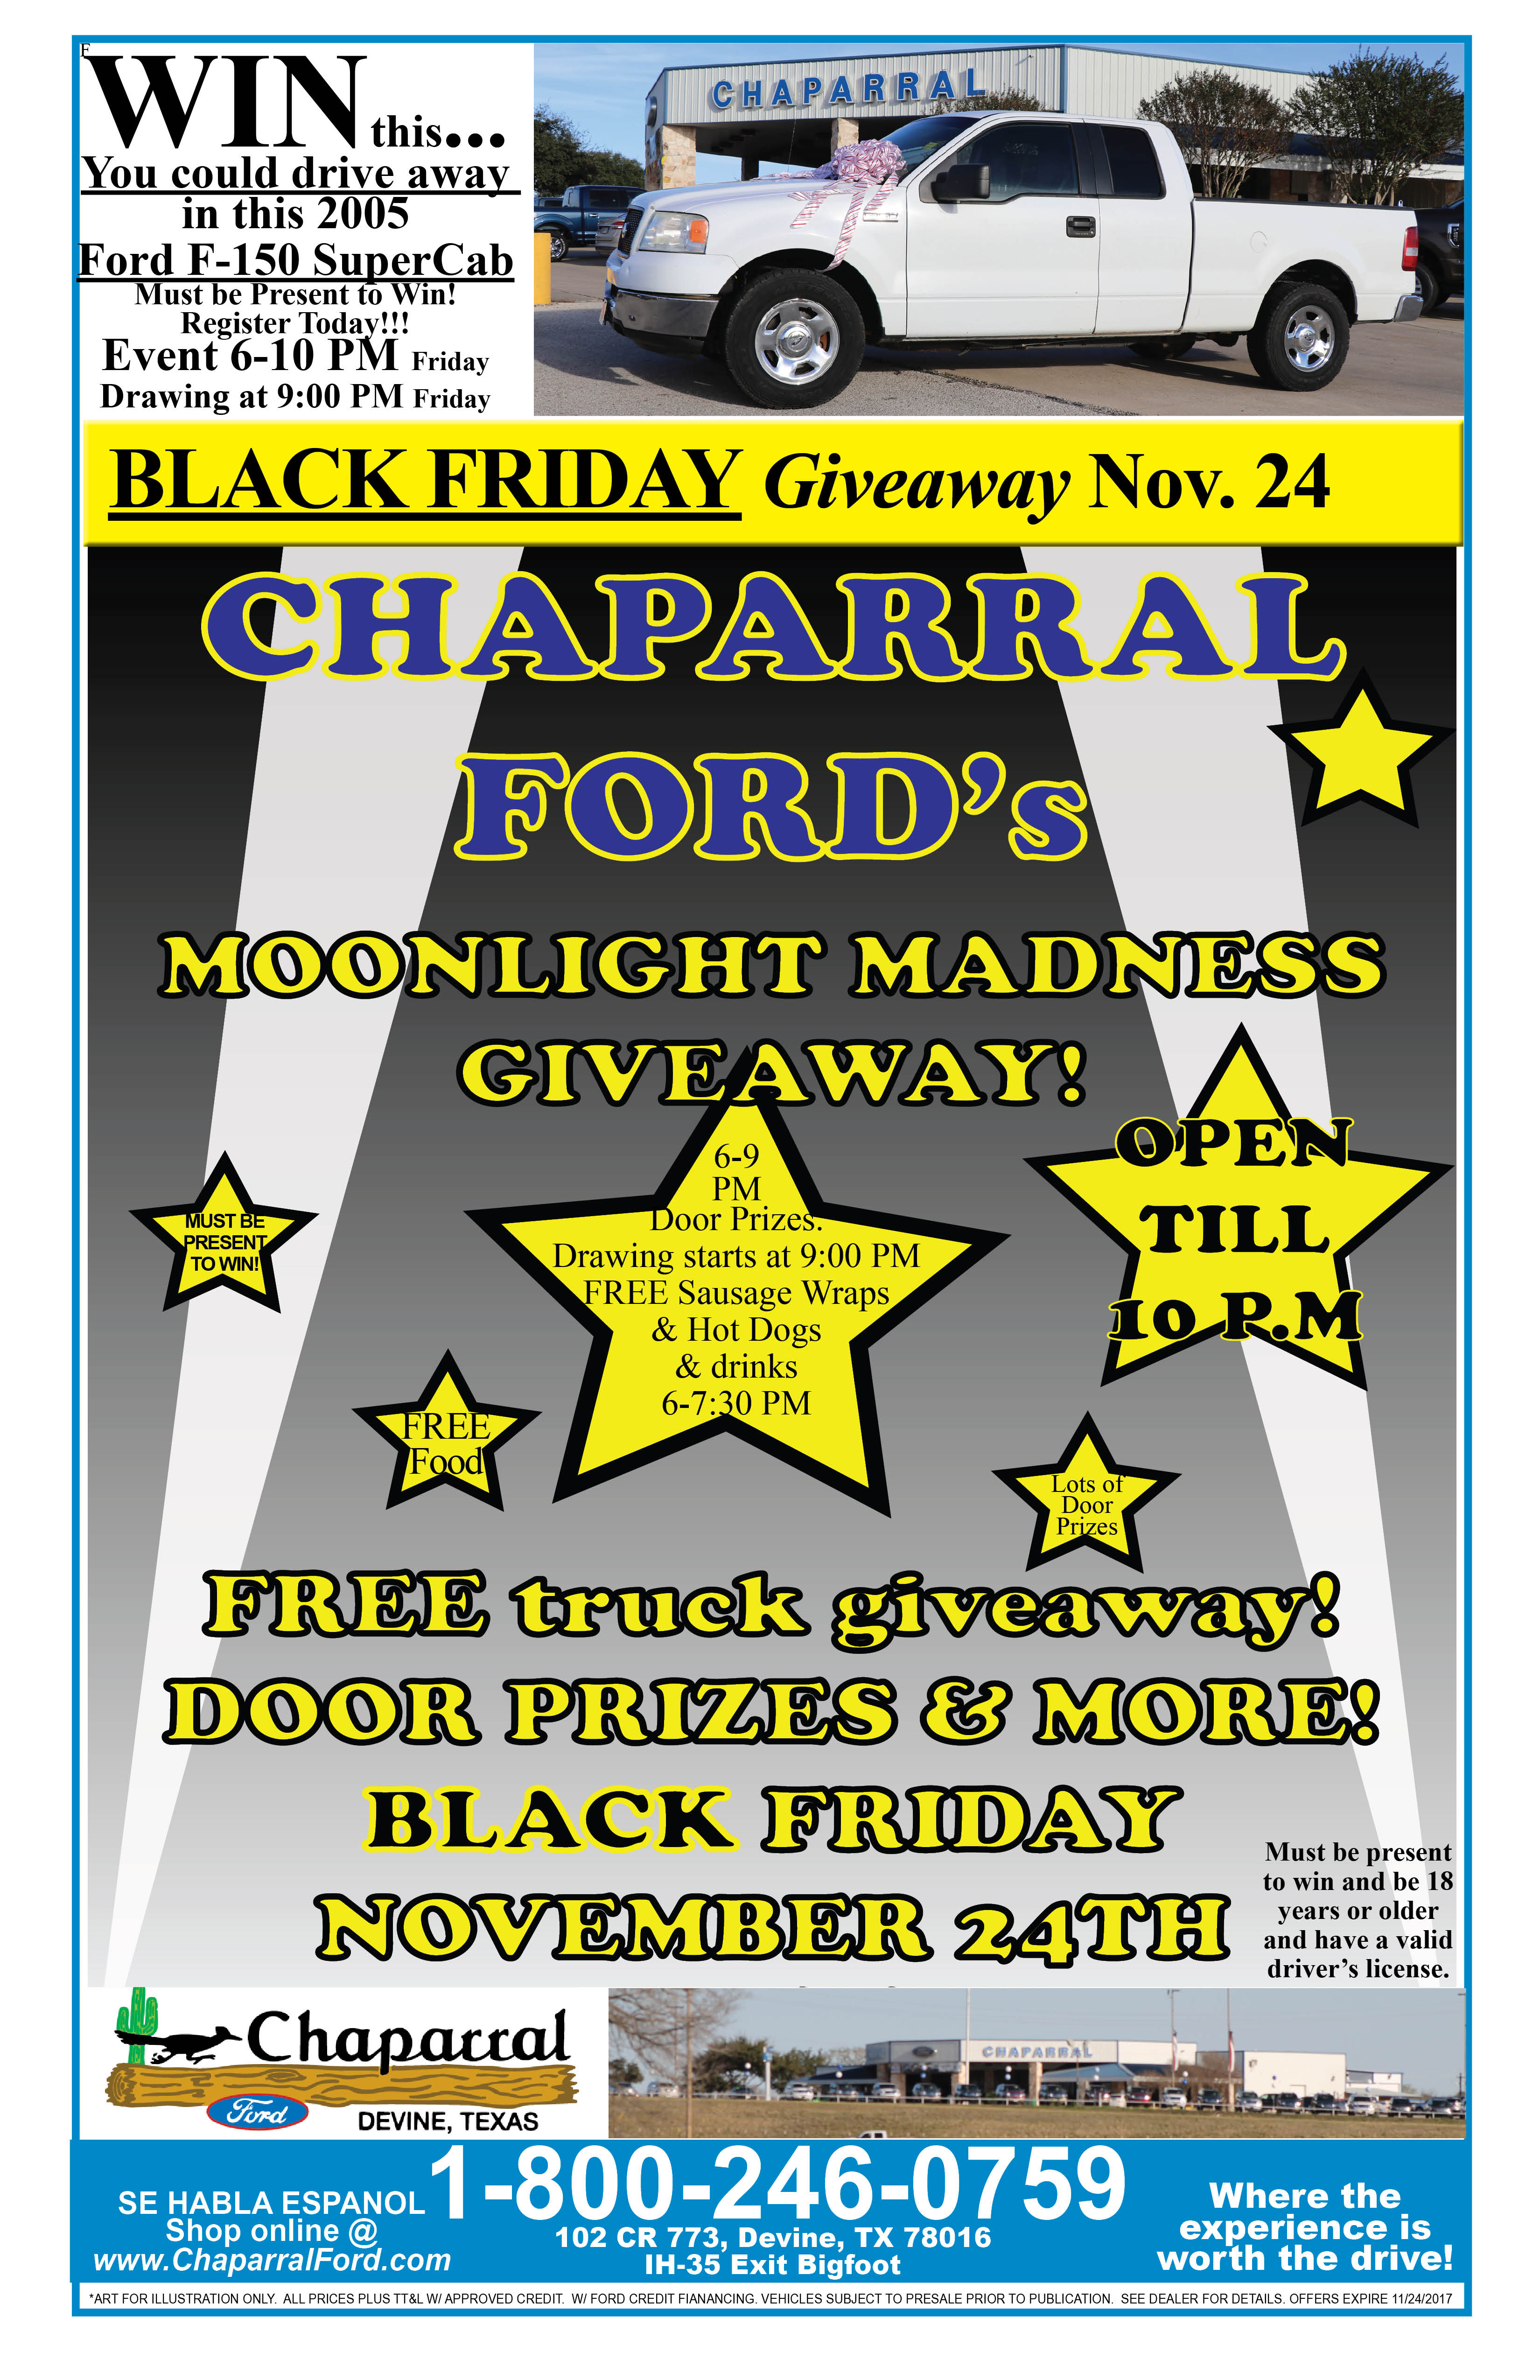 Chaparral Ford giving away truck in Moonlight Madness